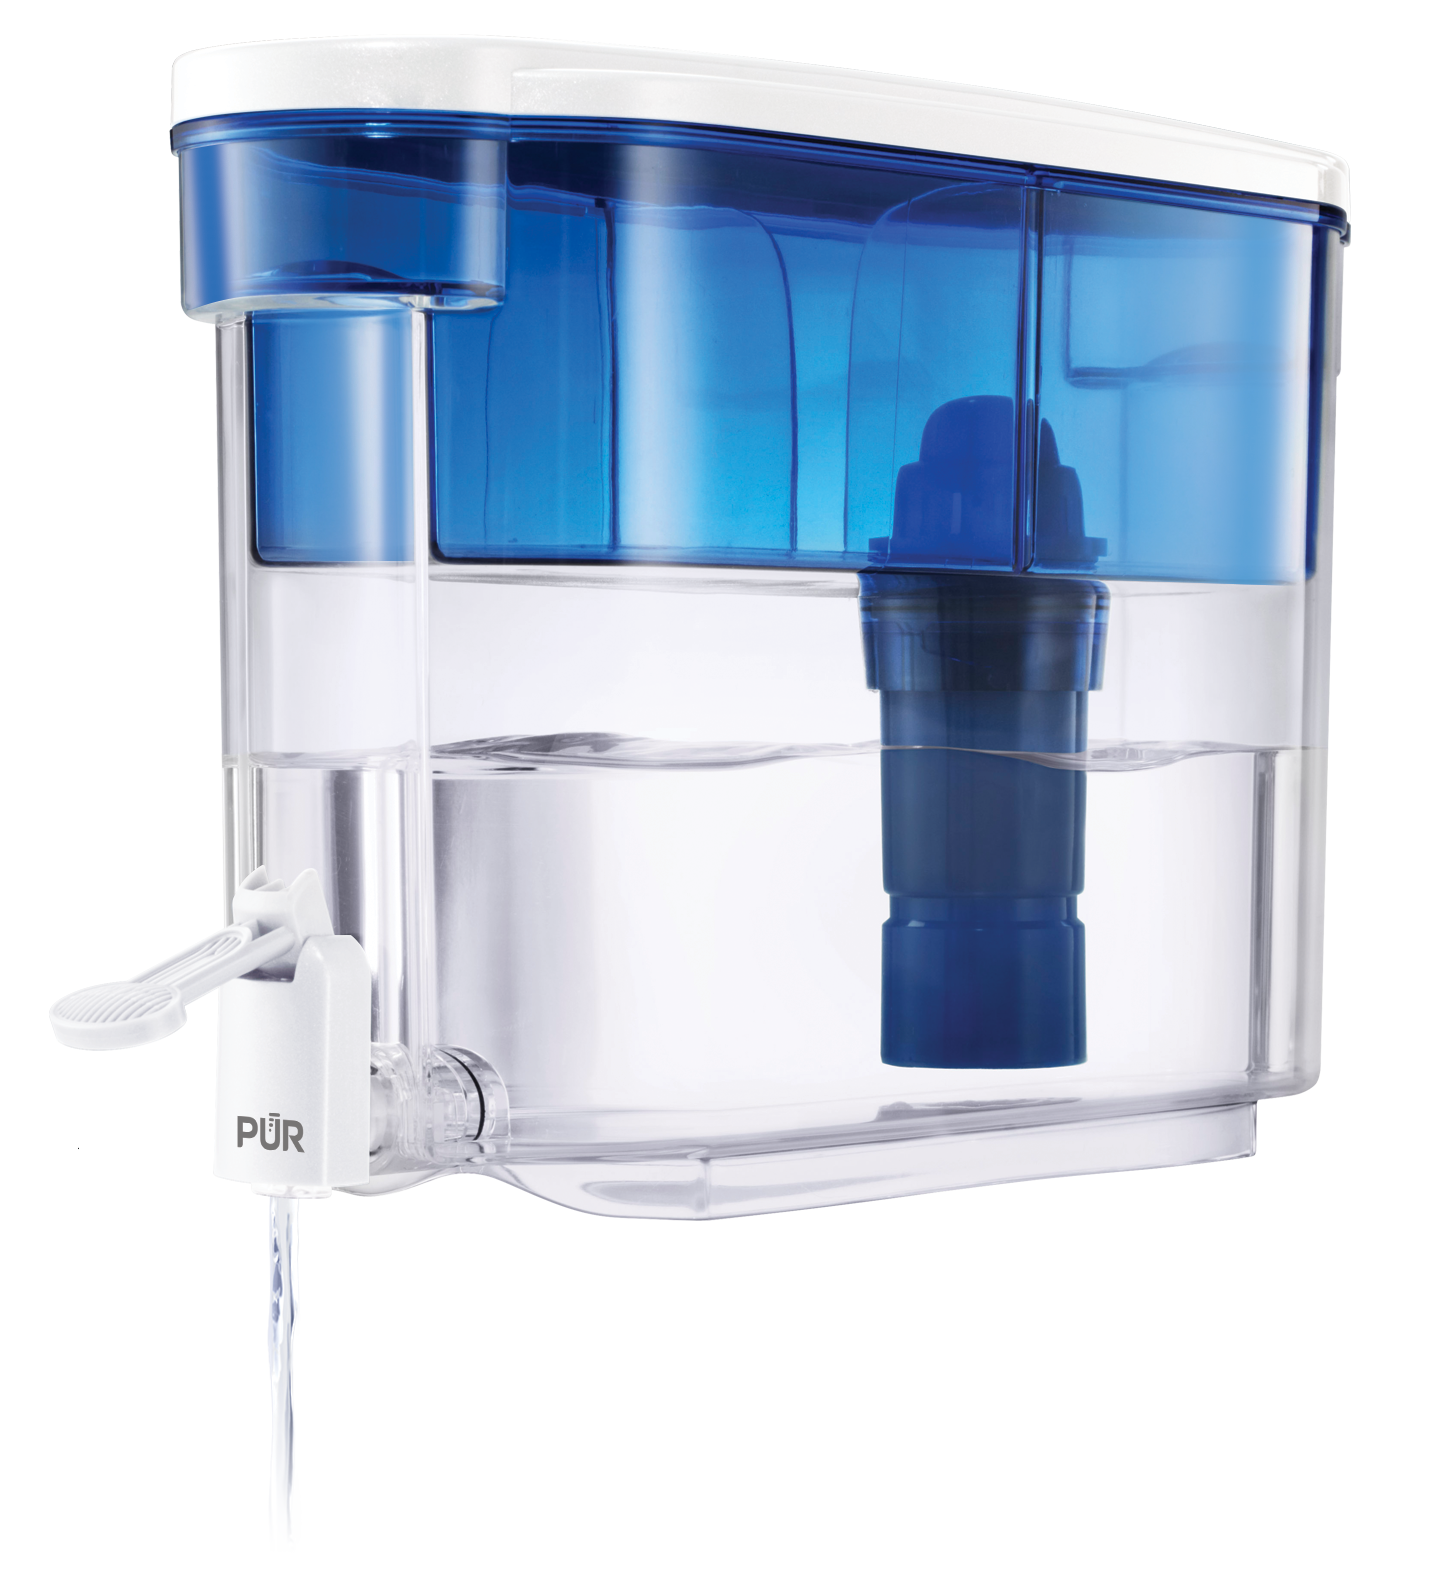 Classic 18-Cup Dispenser | User Manuels | Pinterest | Water filters ...